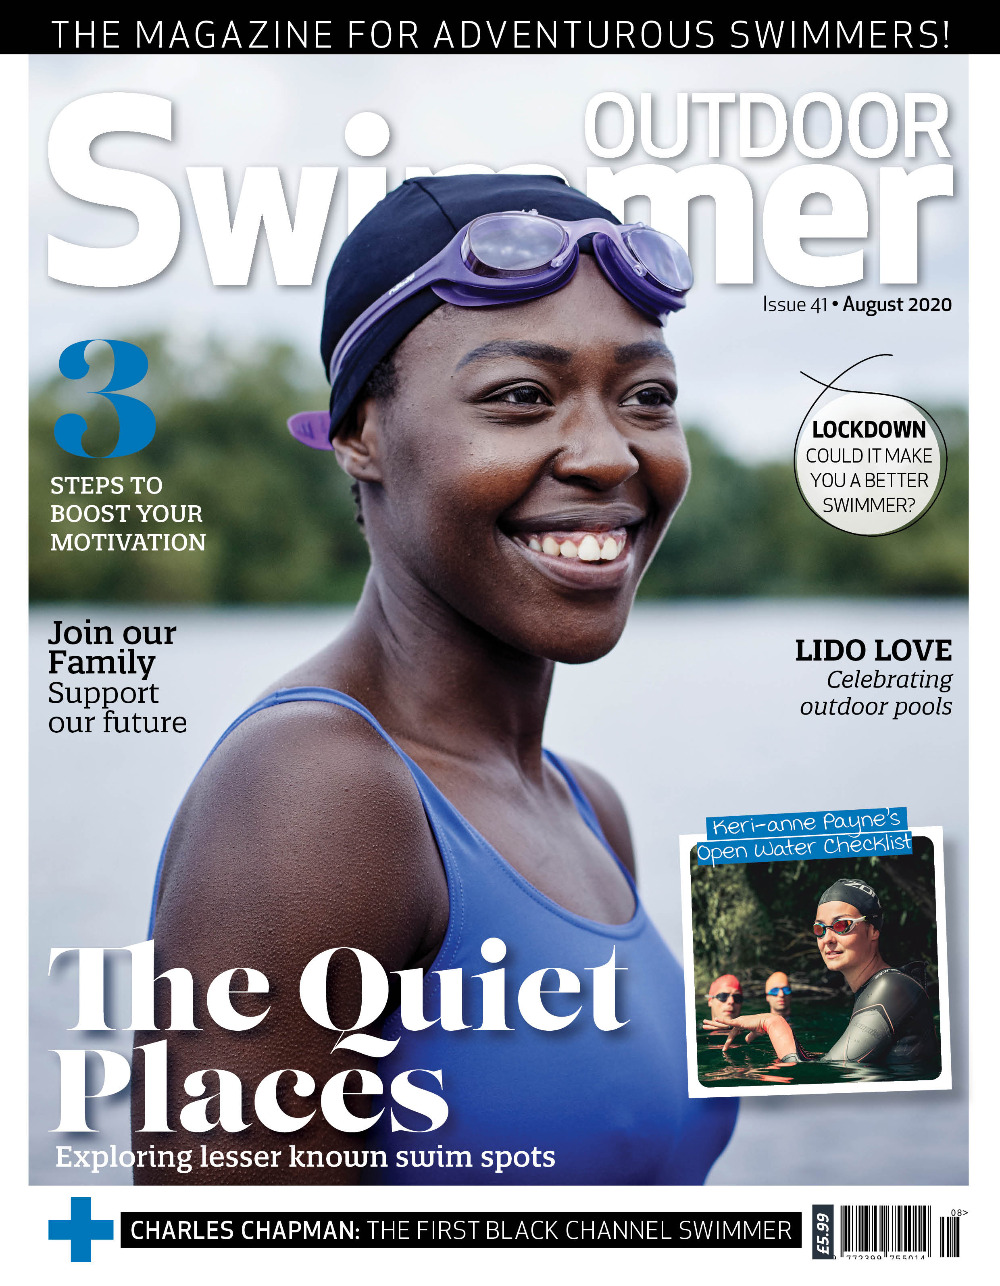 Outdoor Swimmer august 2020 front cover